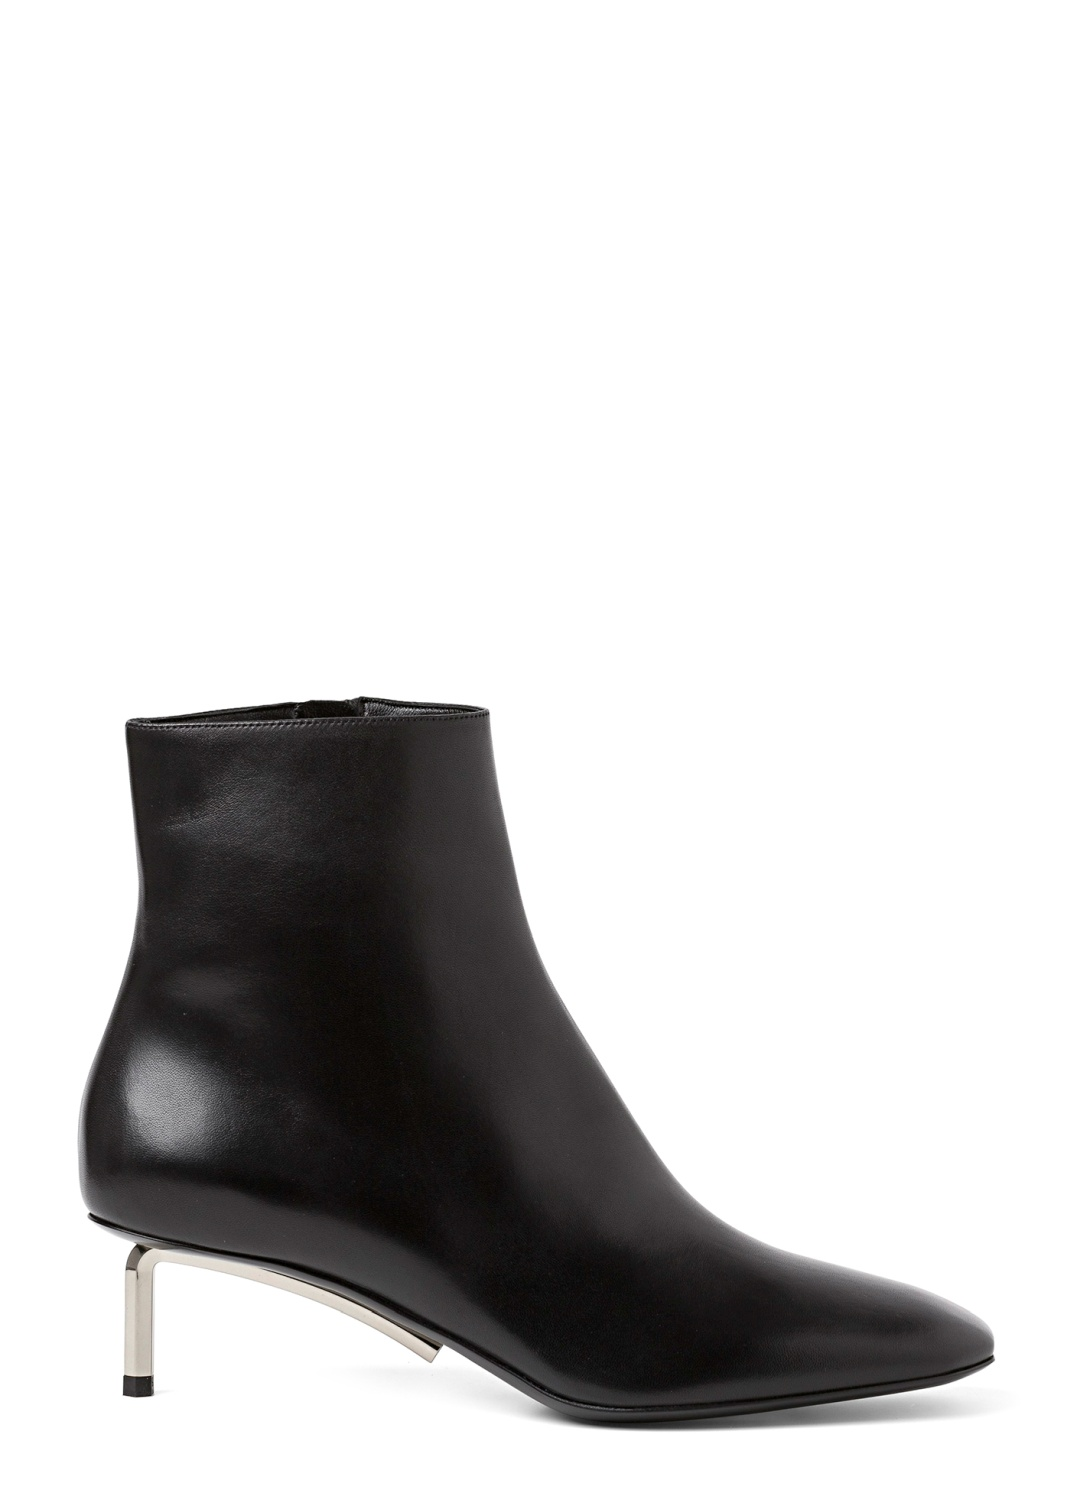 Allen Ankle Bootie Nappa 50mm image number 0